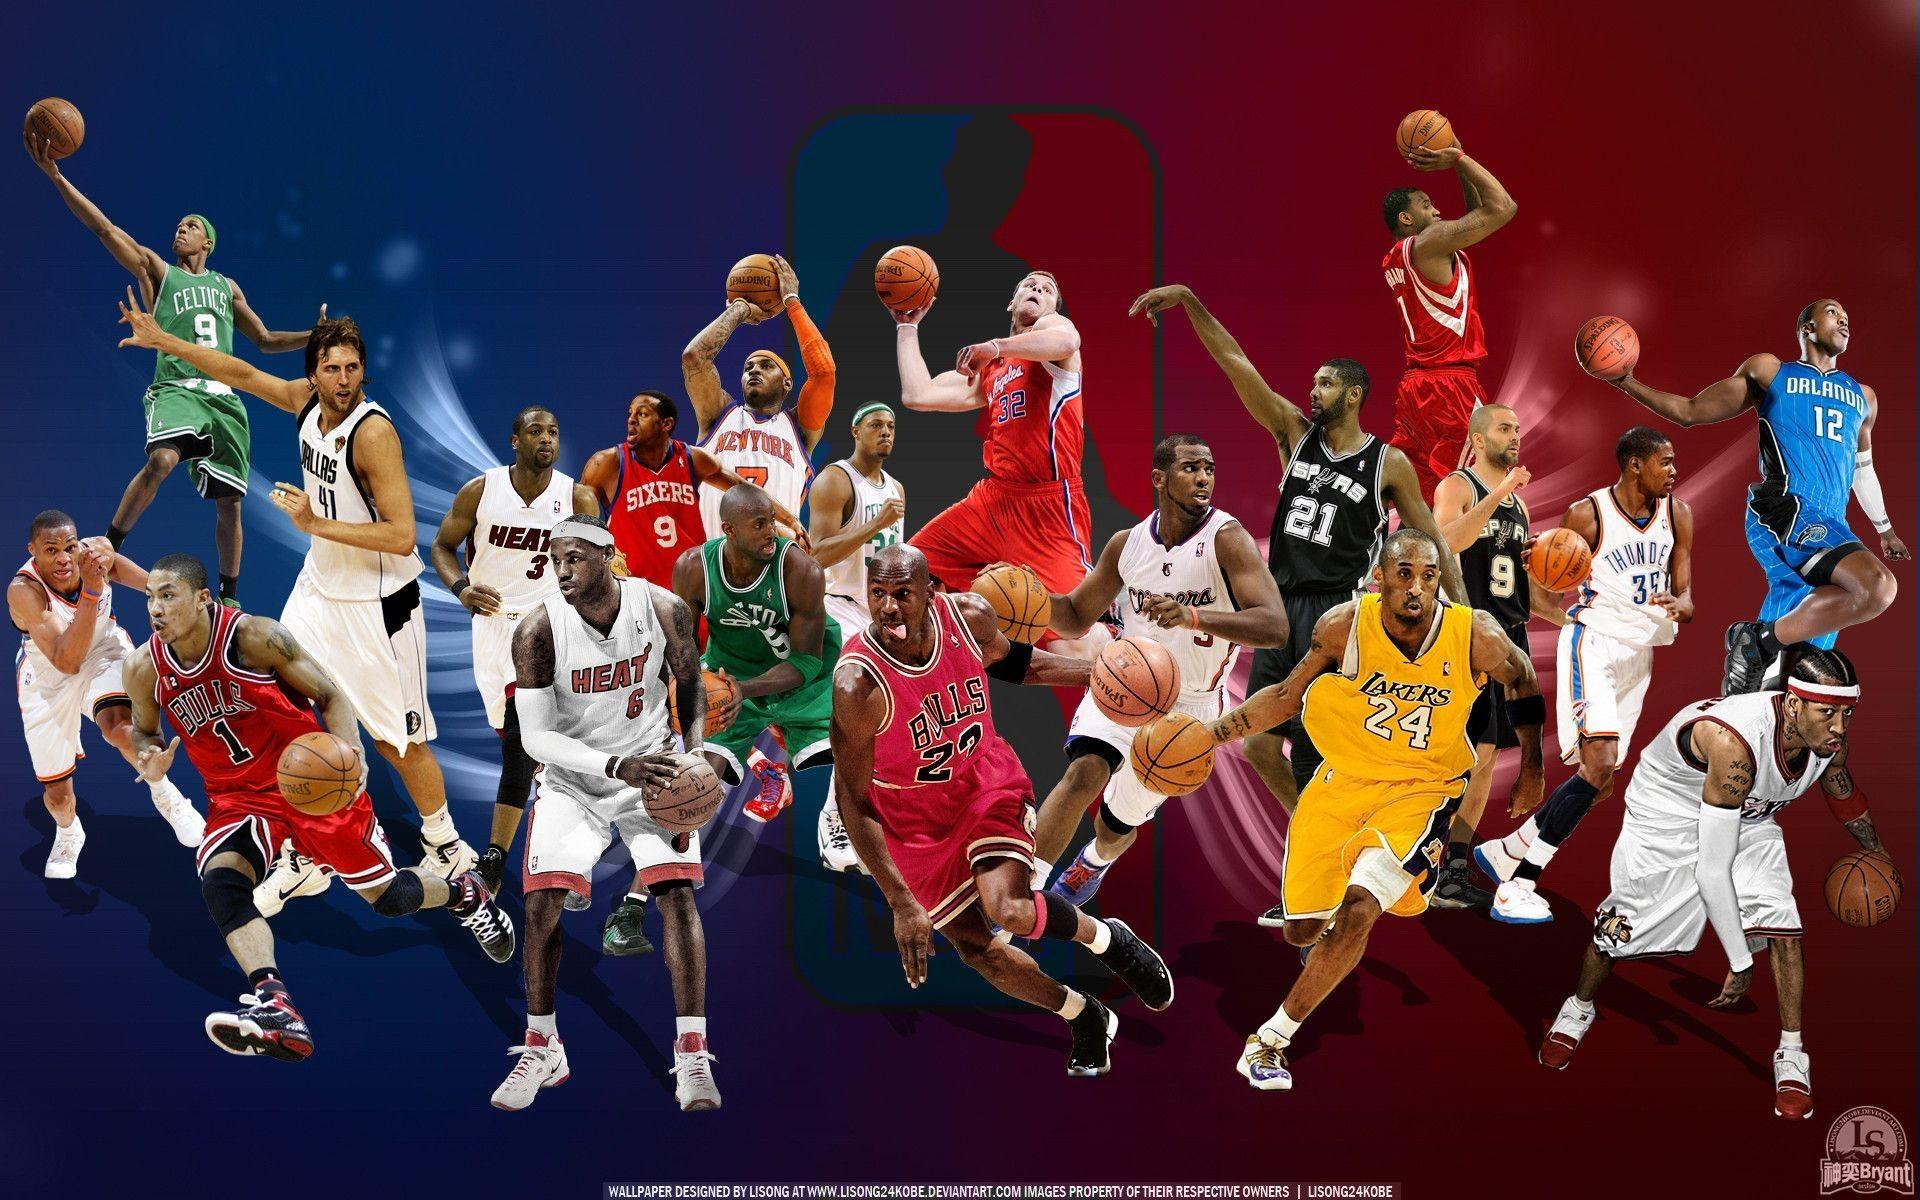 1920x1200 Basketball Wallpapers Nba Group (61+), Download for free